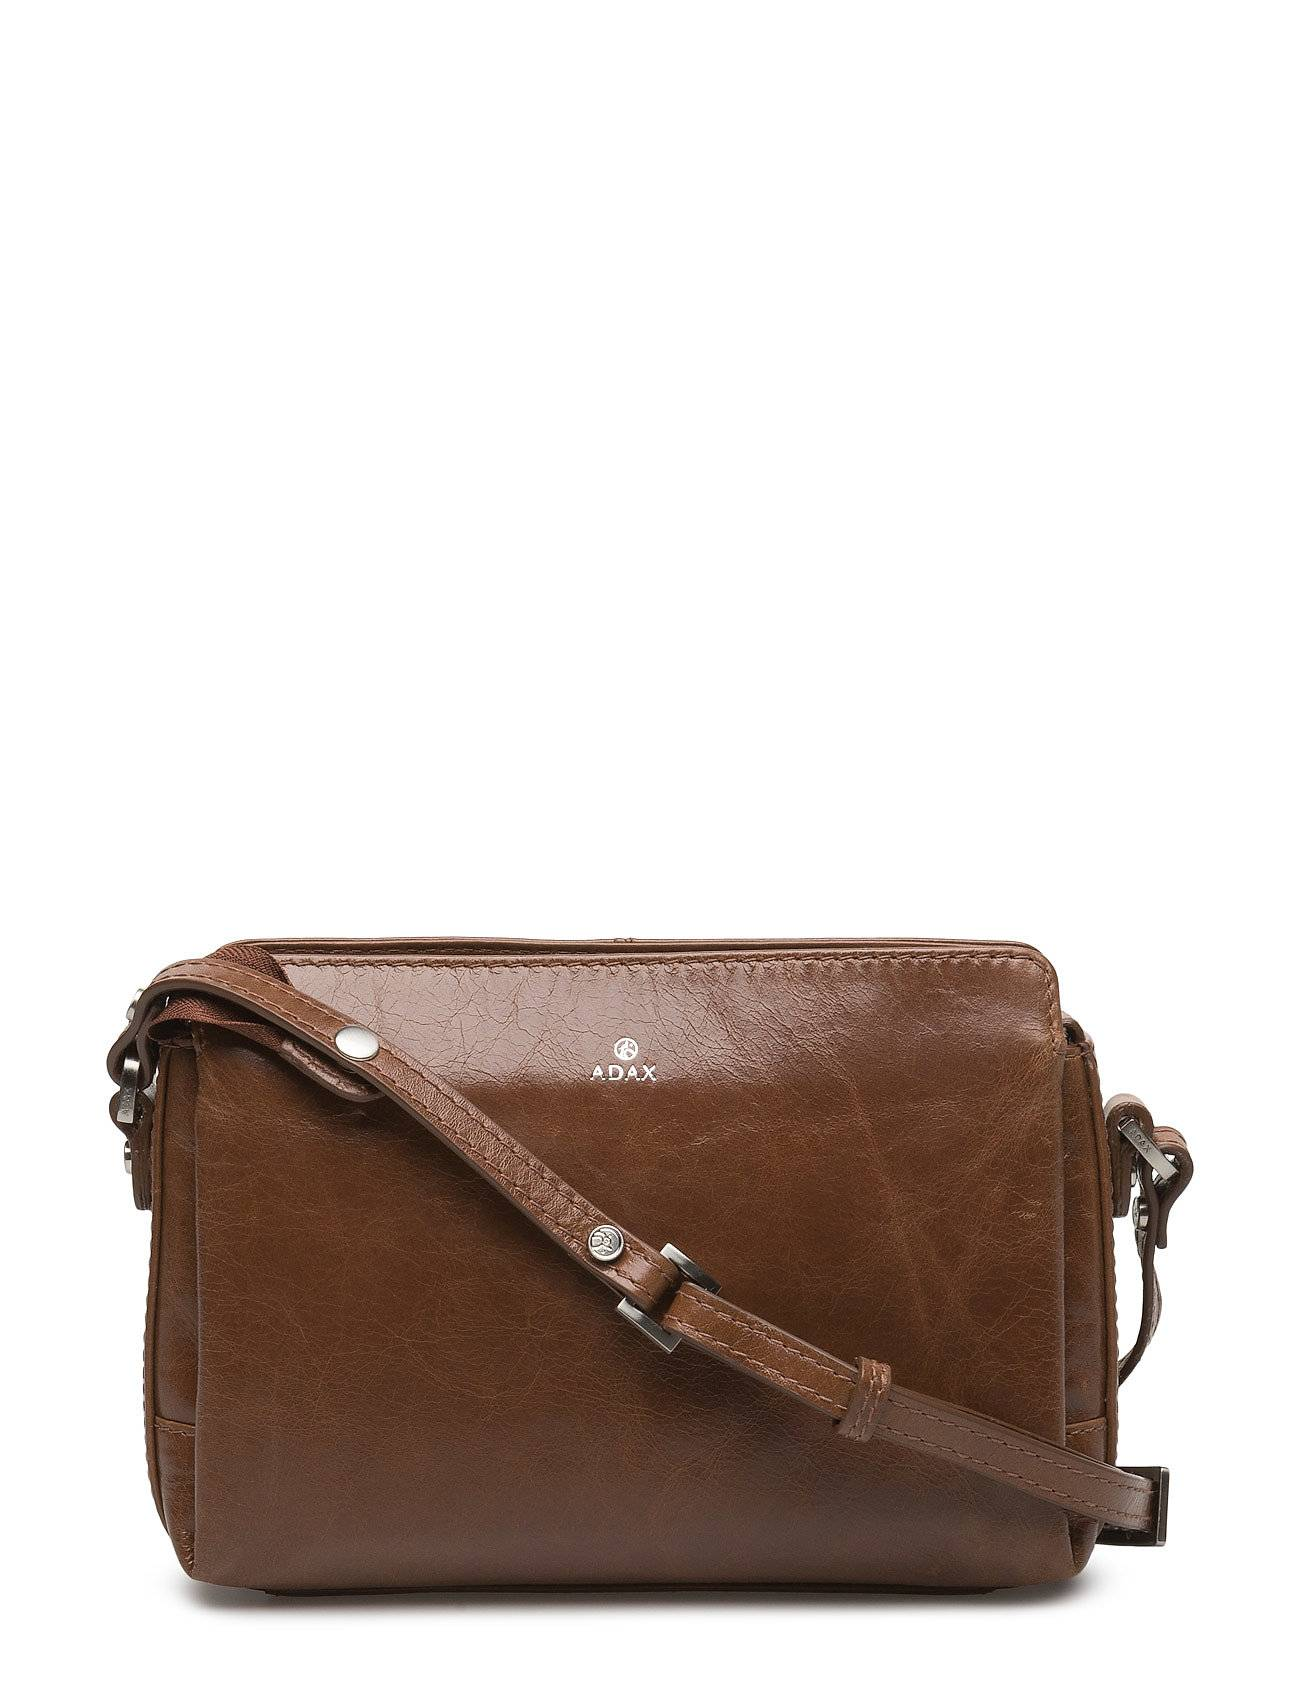 Adax Salerno Shoulder Bag Allie